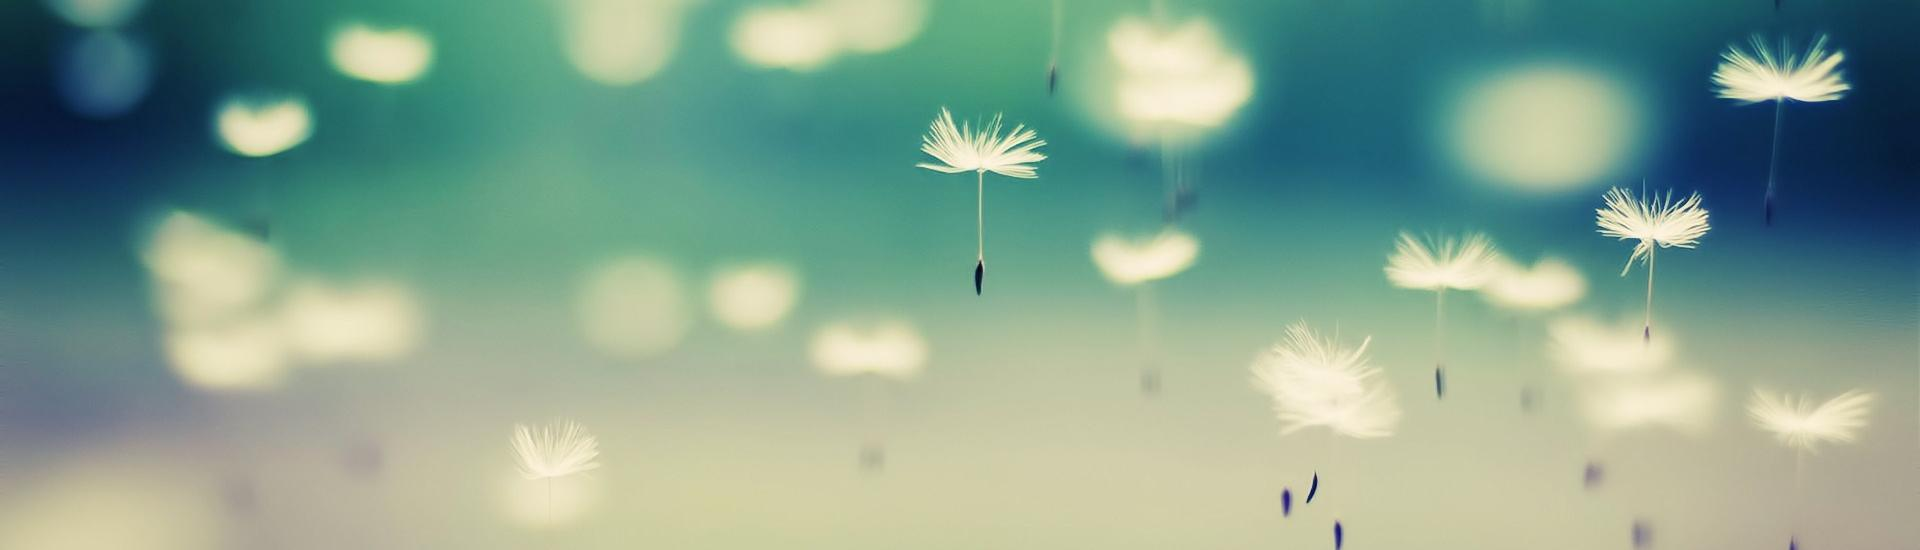 files/DMS/HU/tumblrstaticbeautiful-dandelion-wallpaper.jpg